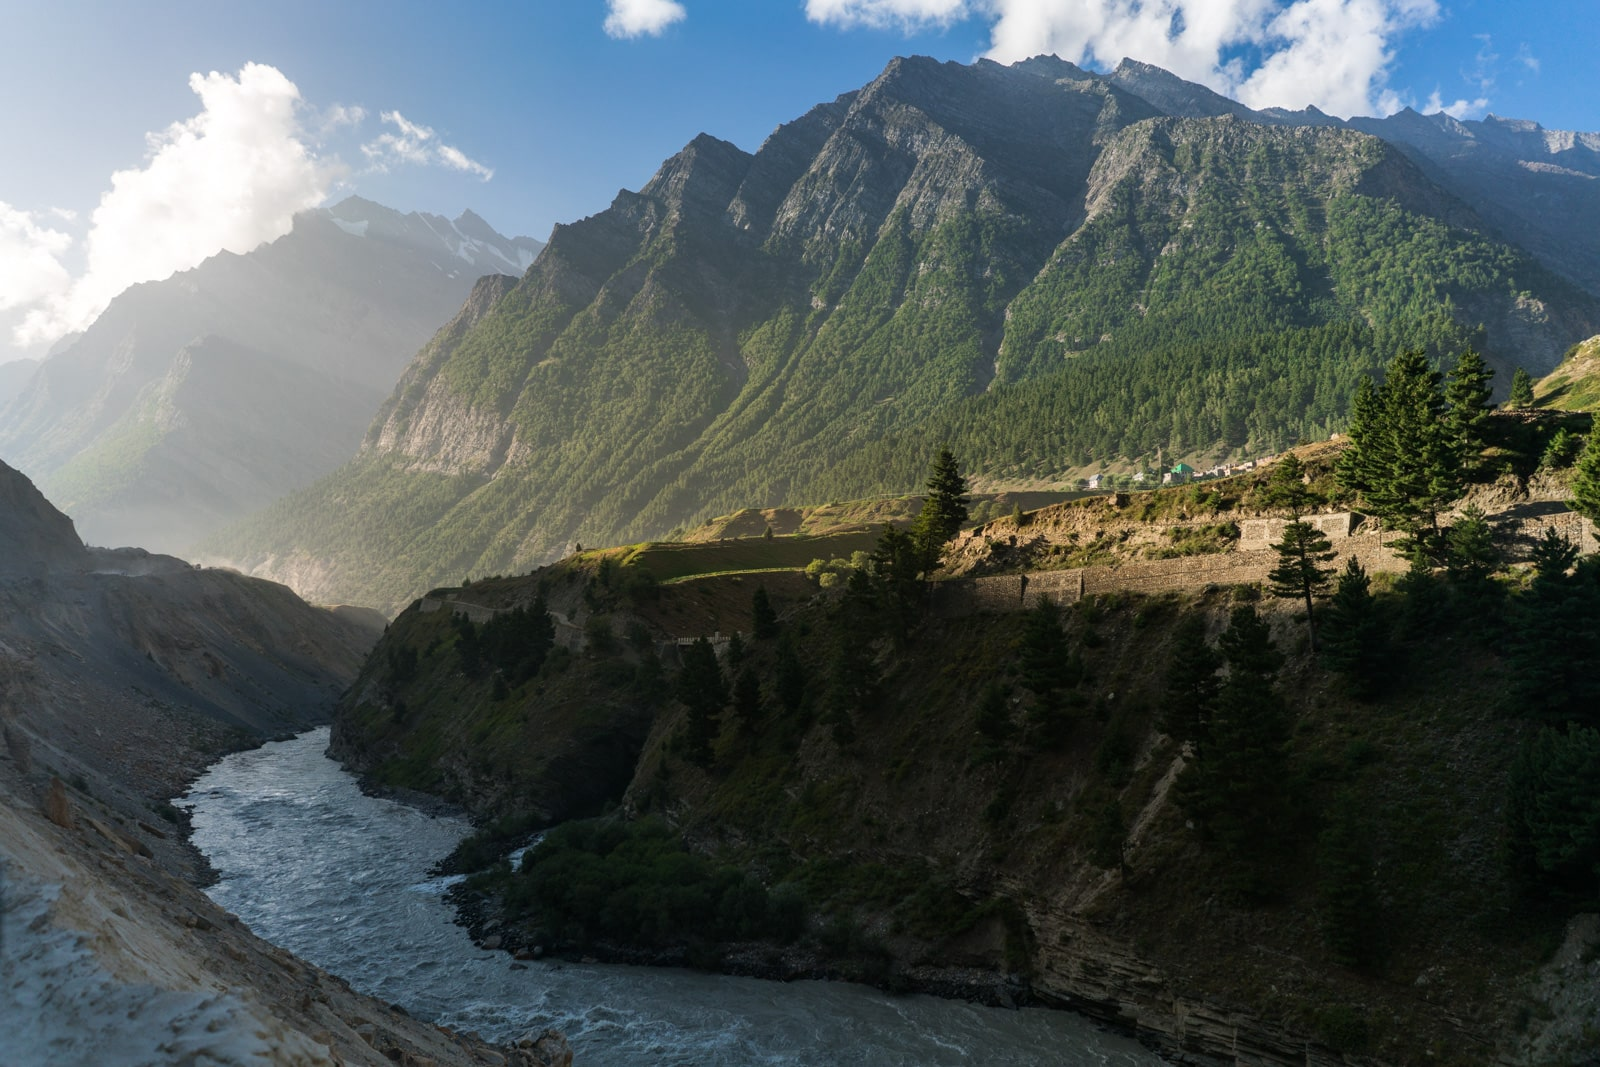 Hitchhiking the Leh - Manali highway - The green mountains of Himachal Pradesh, India - Lost With Purpose travel blog